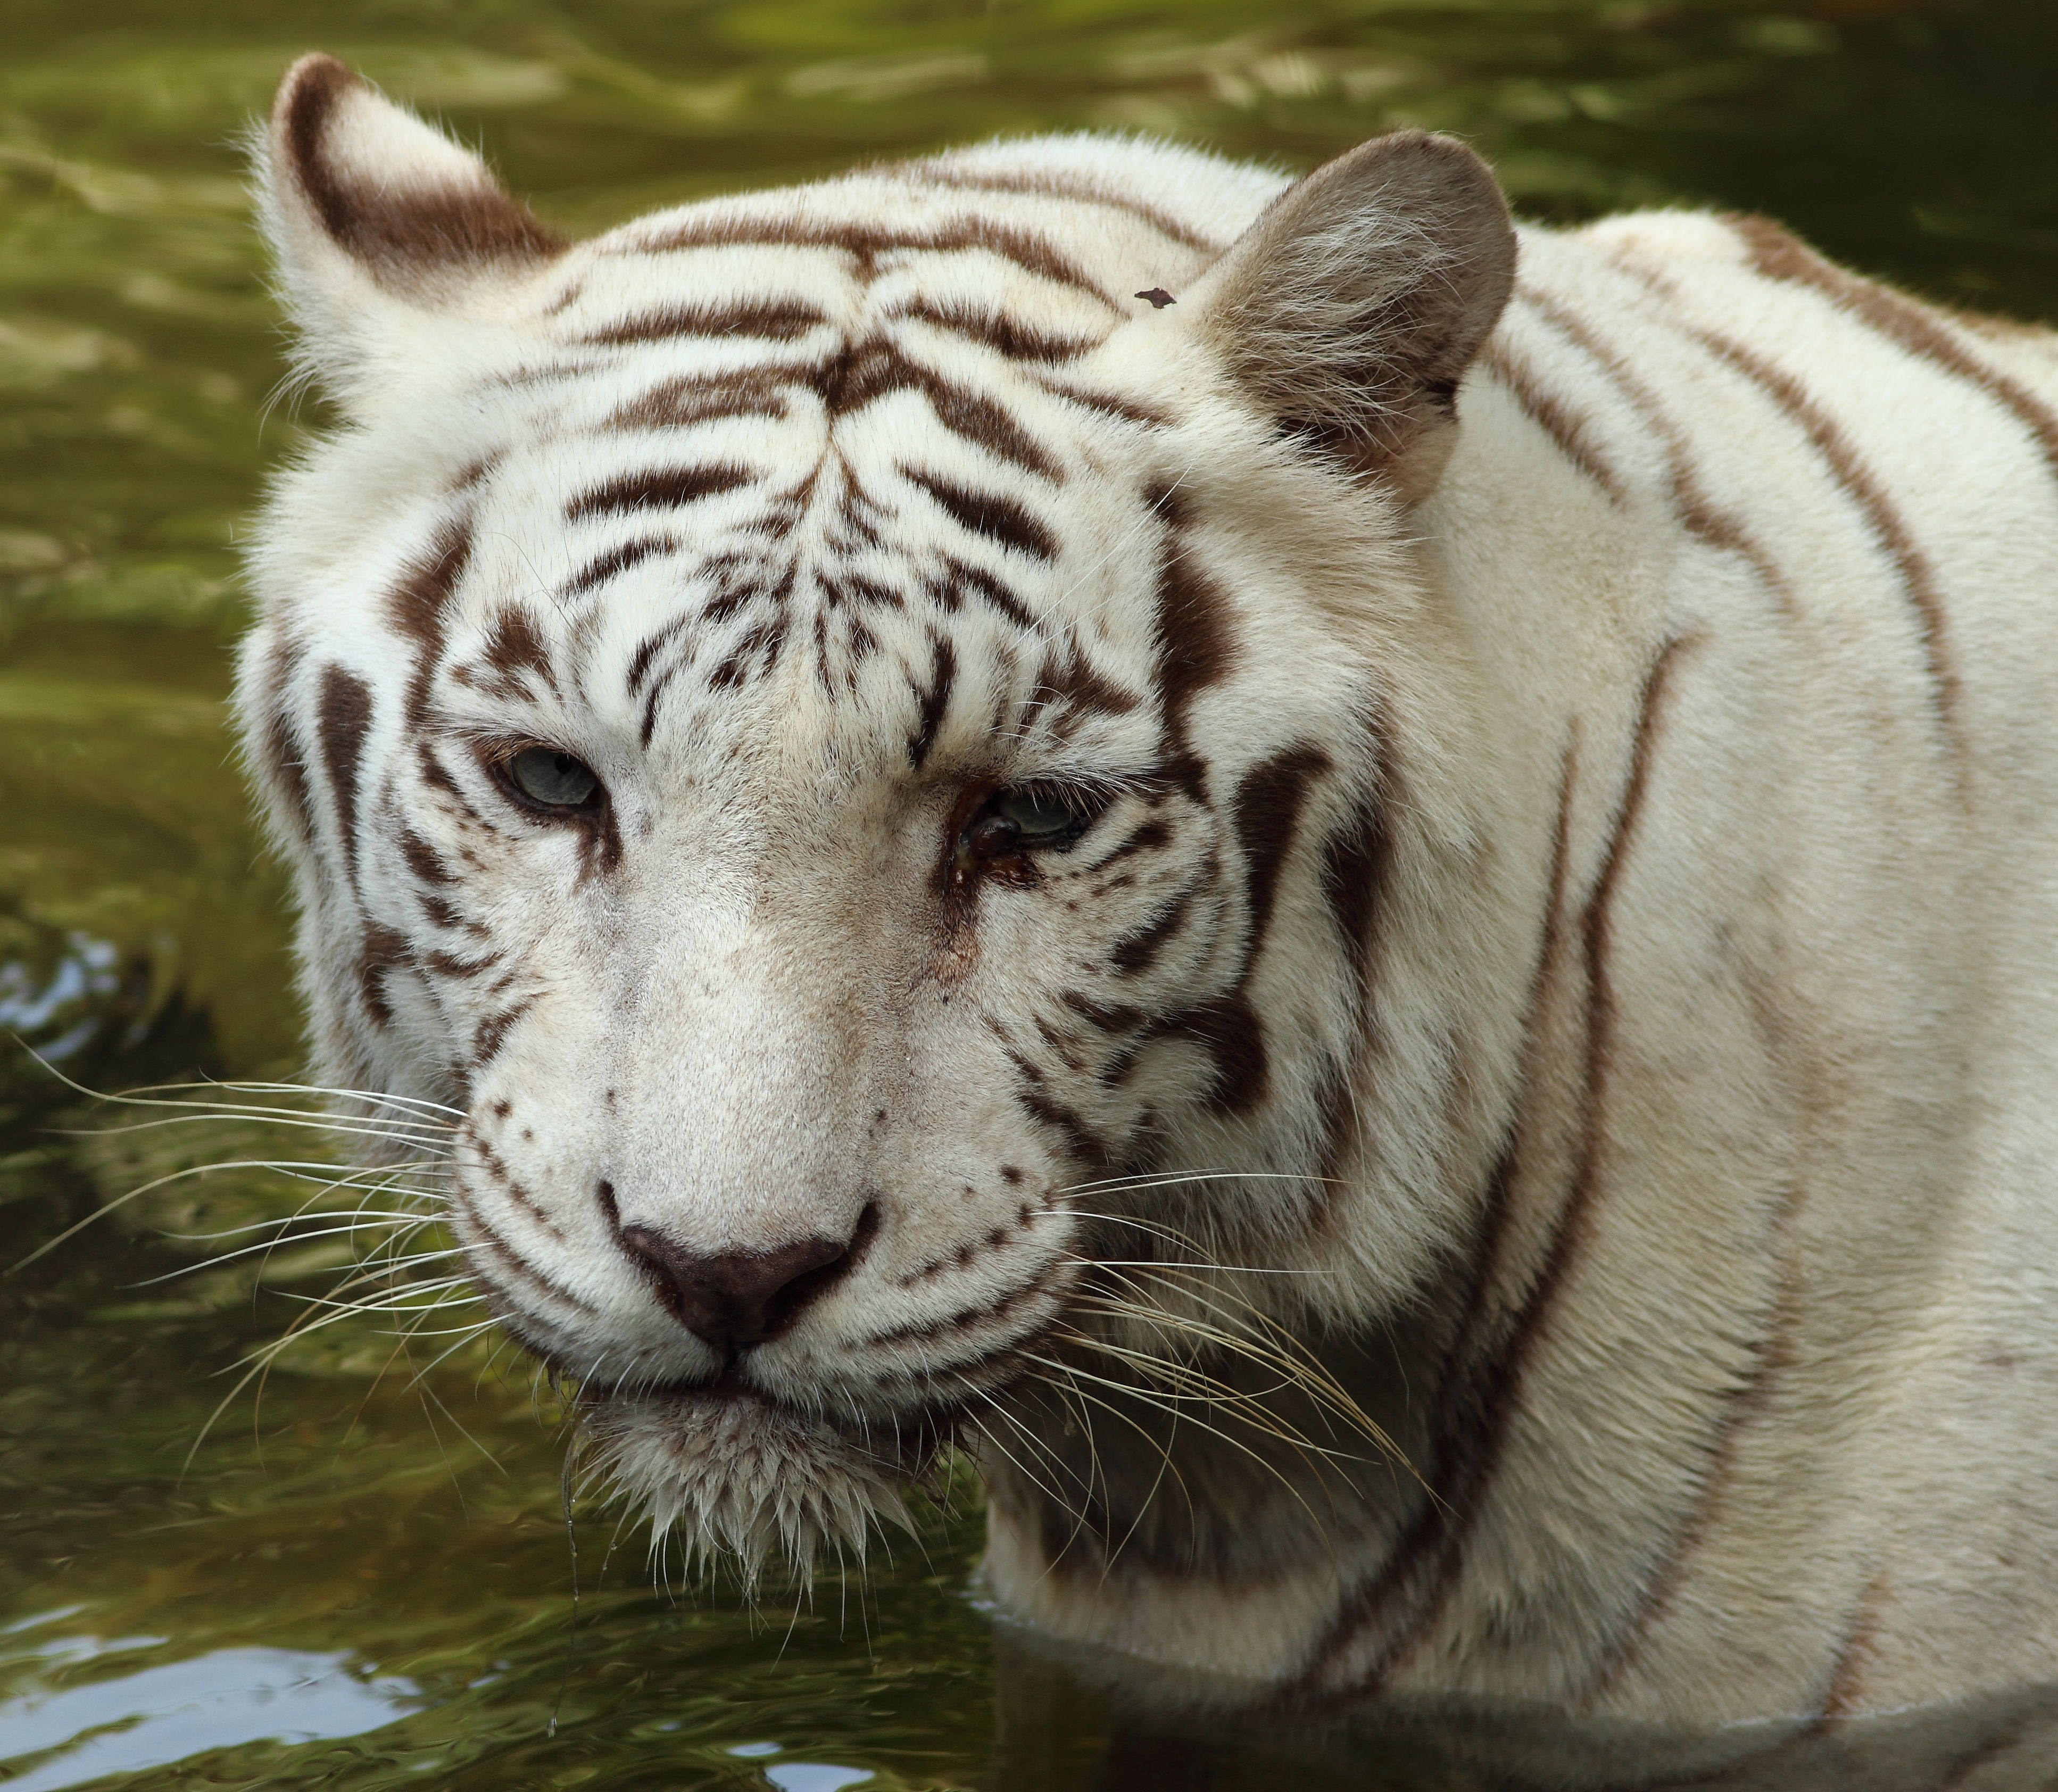 Zoologist With White Tiger White tiger - white bengal tiger  1  newer    Zoologist With Tiger